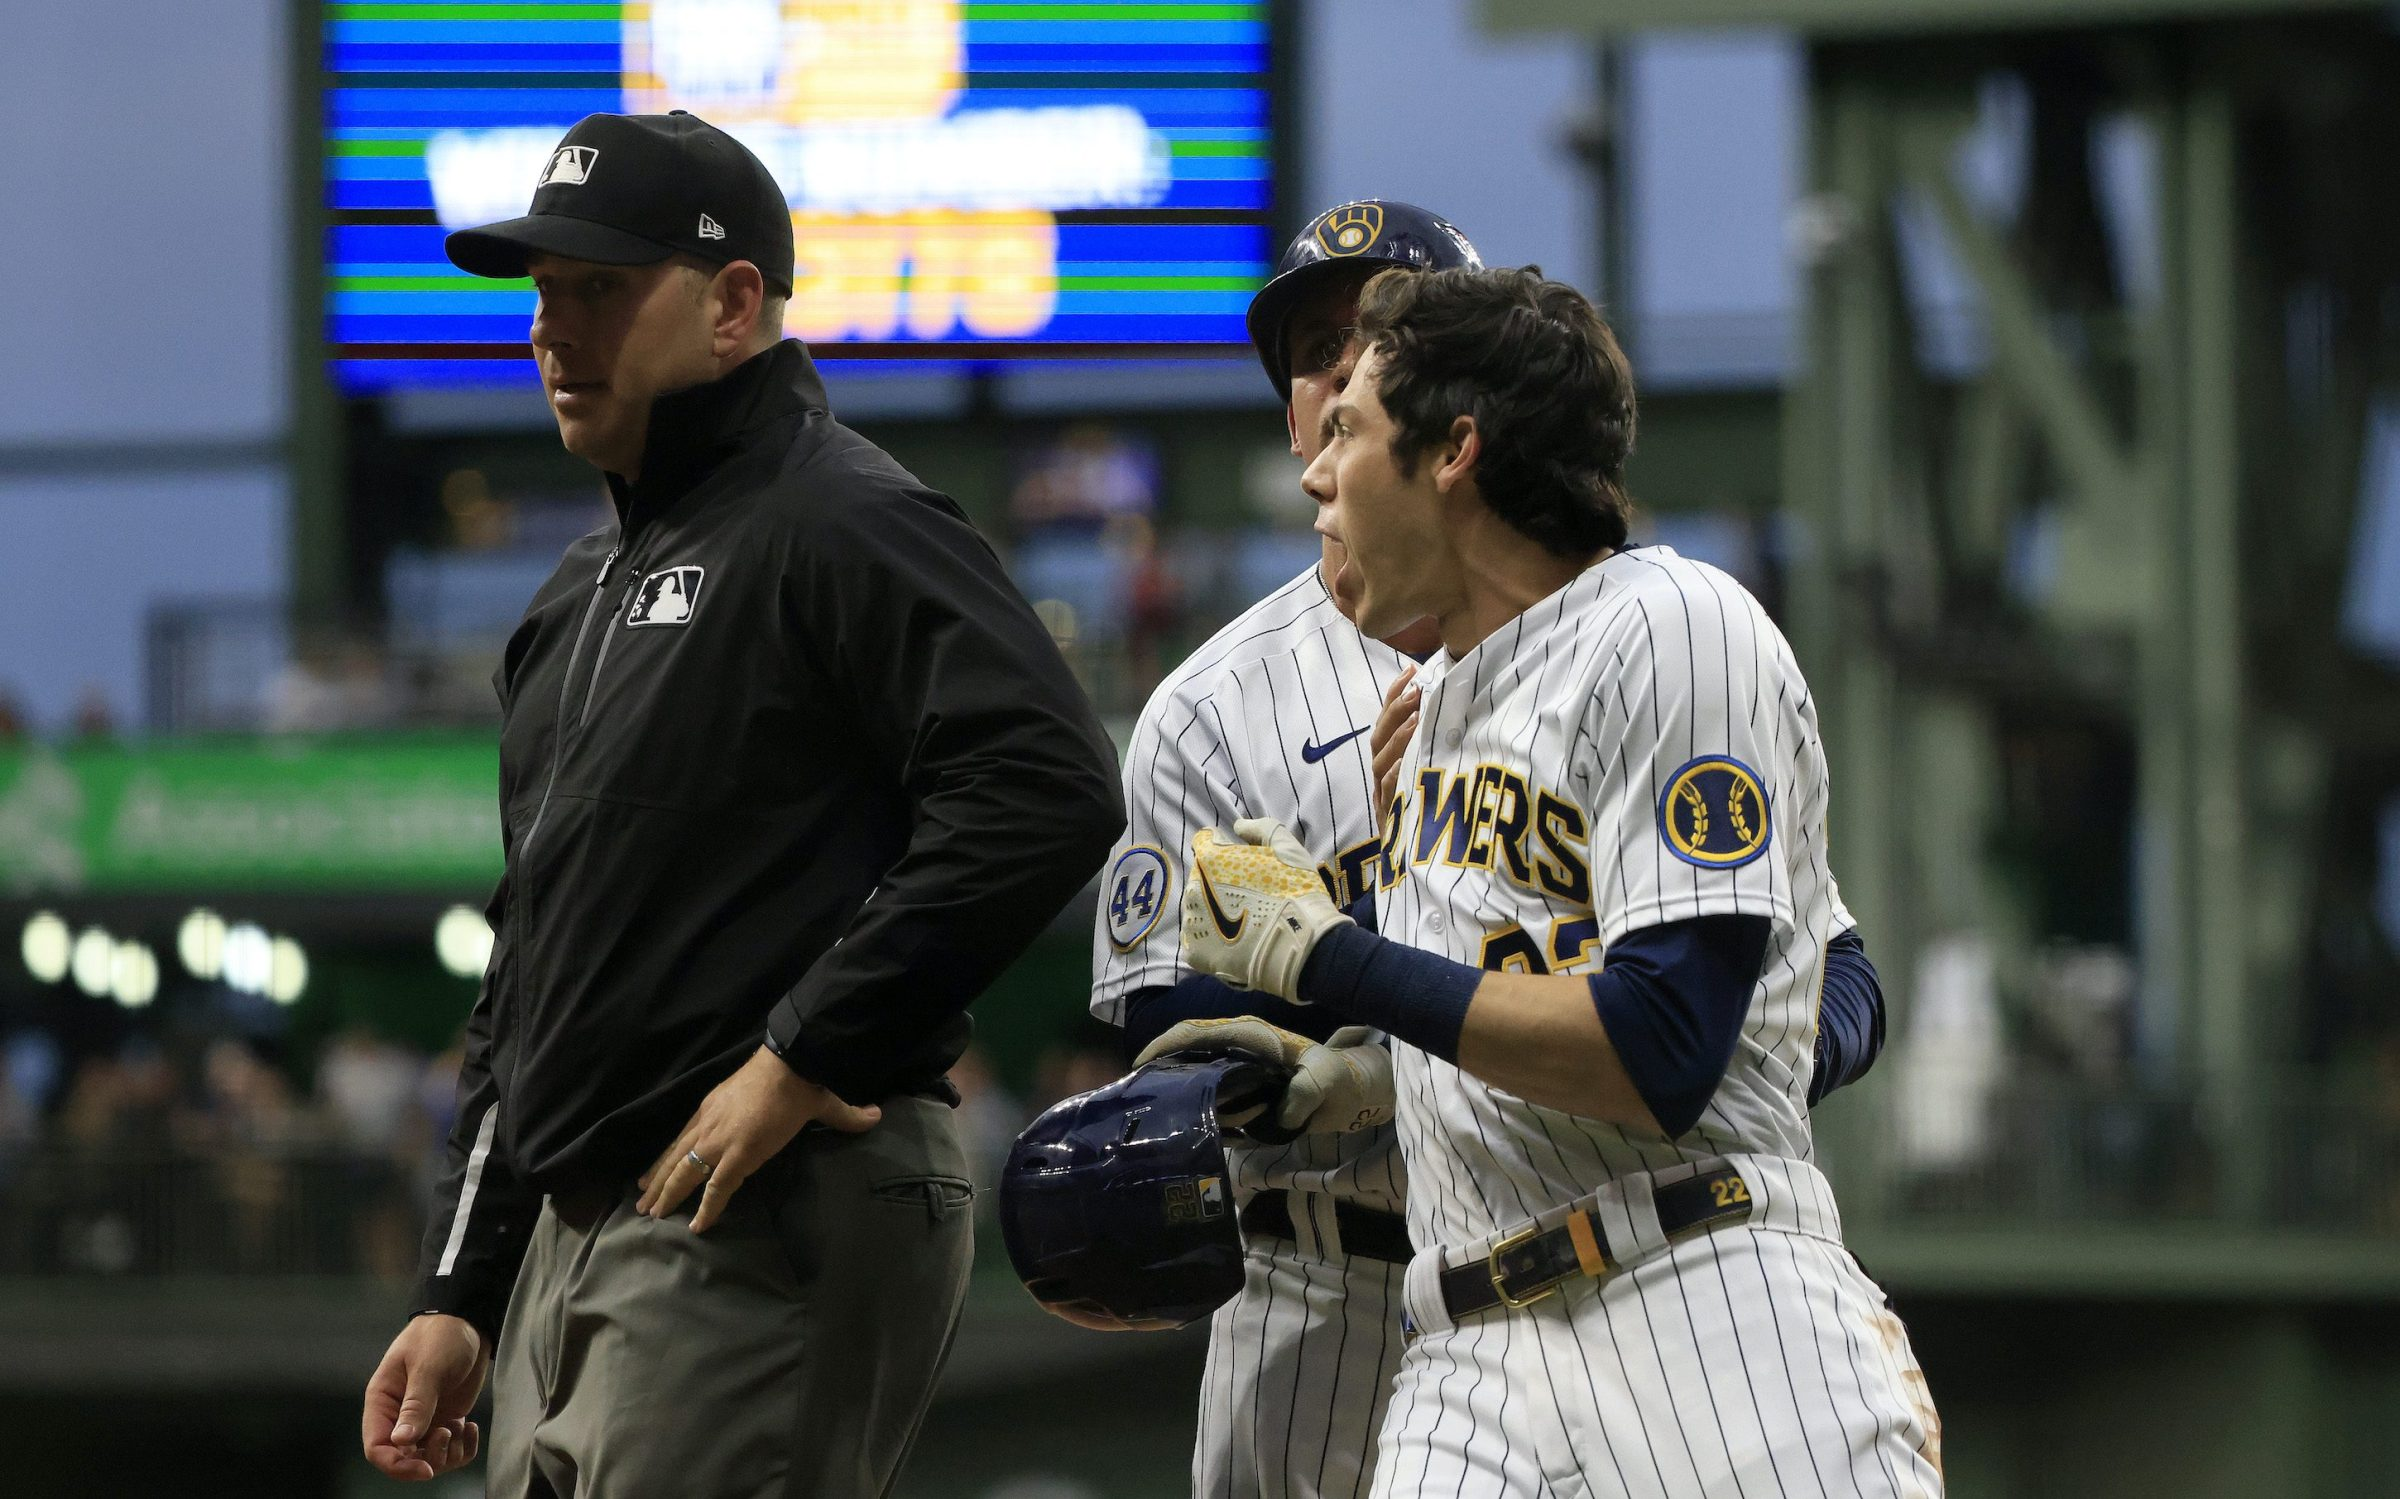 Christian Yelich #22 of the Milwaukee Brewers is held back by Quintin Berry #23 of the Milwaukee Brewers after being ejected from the game by umpire John Libka #84 during the sixth inning at American Family Field on July 10, 2021 in Milwaukee, Wisconsin.